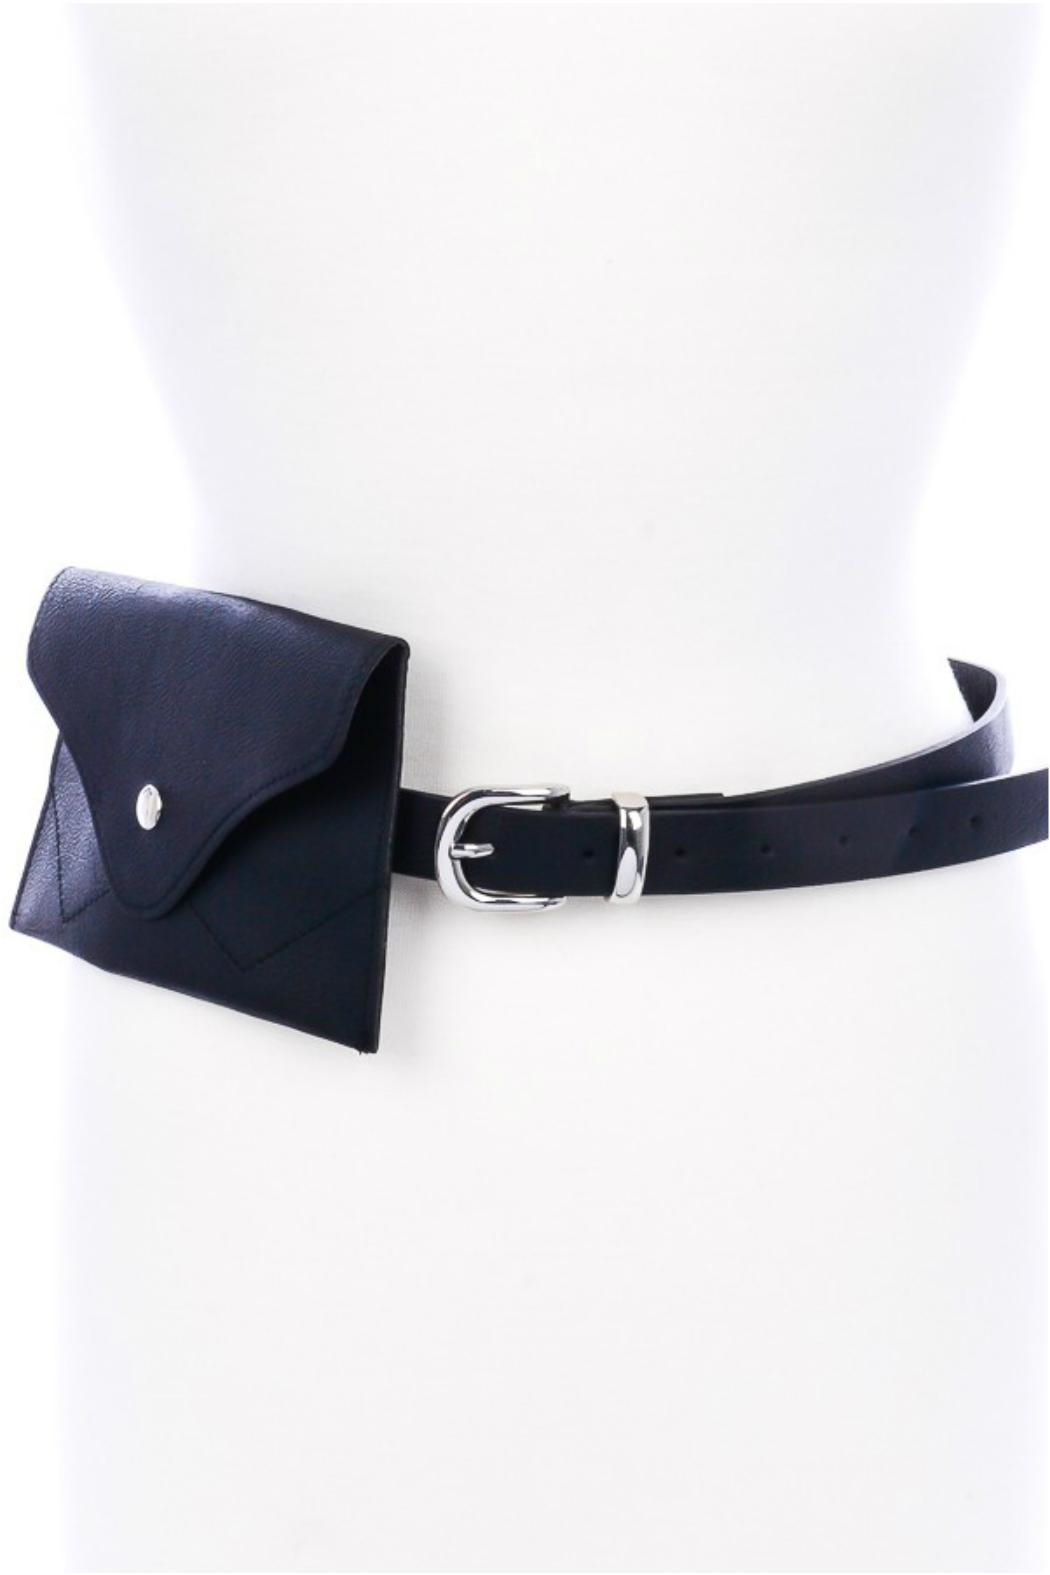 Minx Black Fanny Belt - Main Image